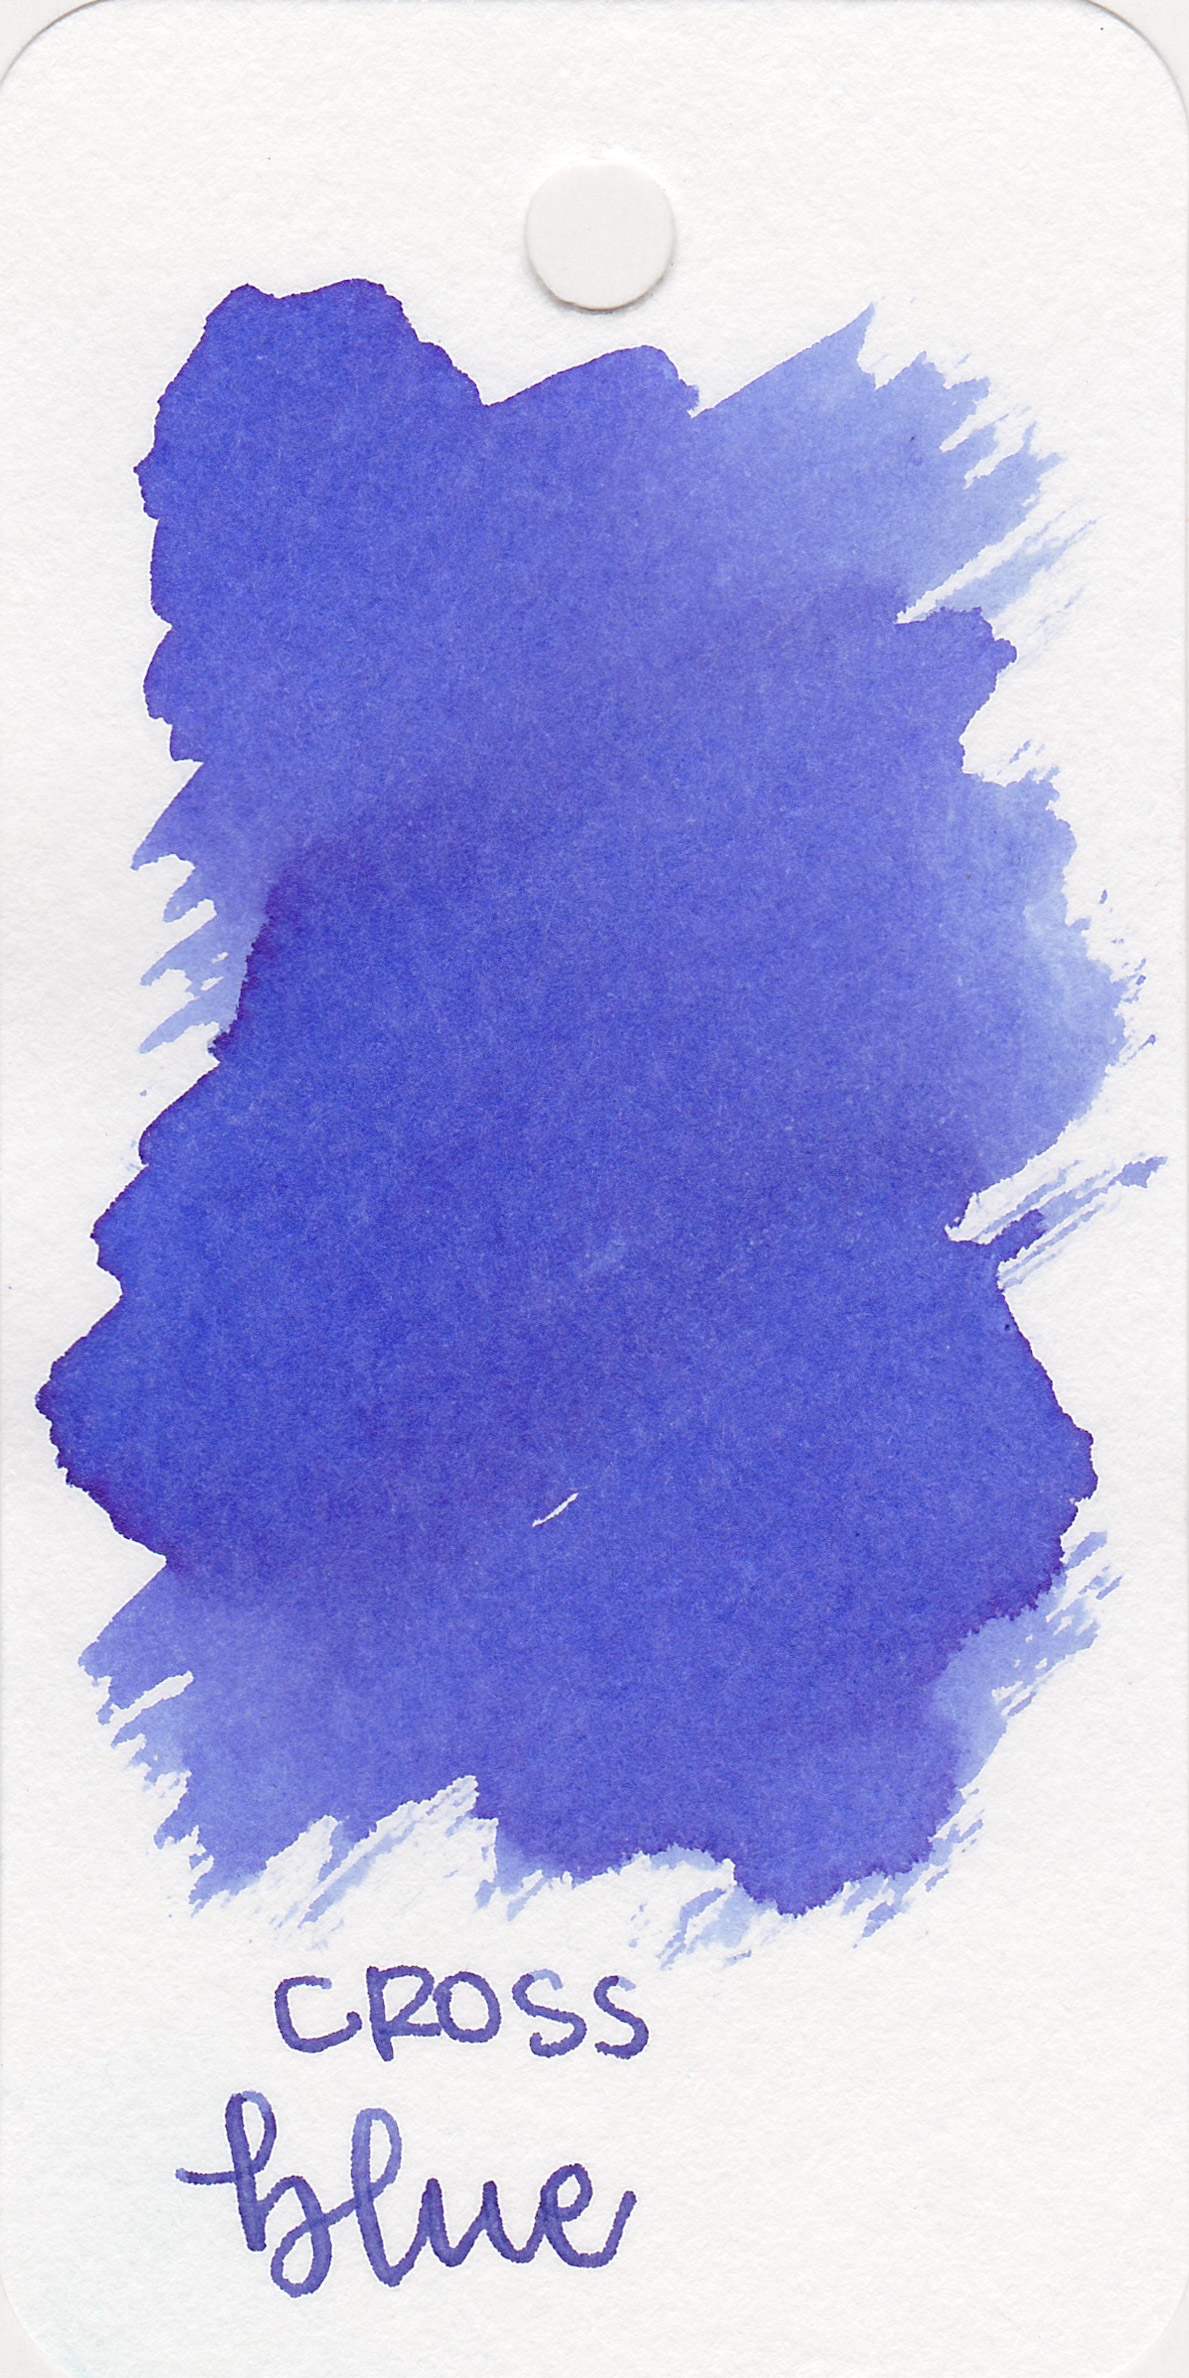 The color: - Blue is a medium blue that has just a bit of a purple undertone.